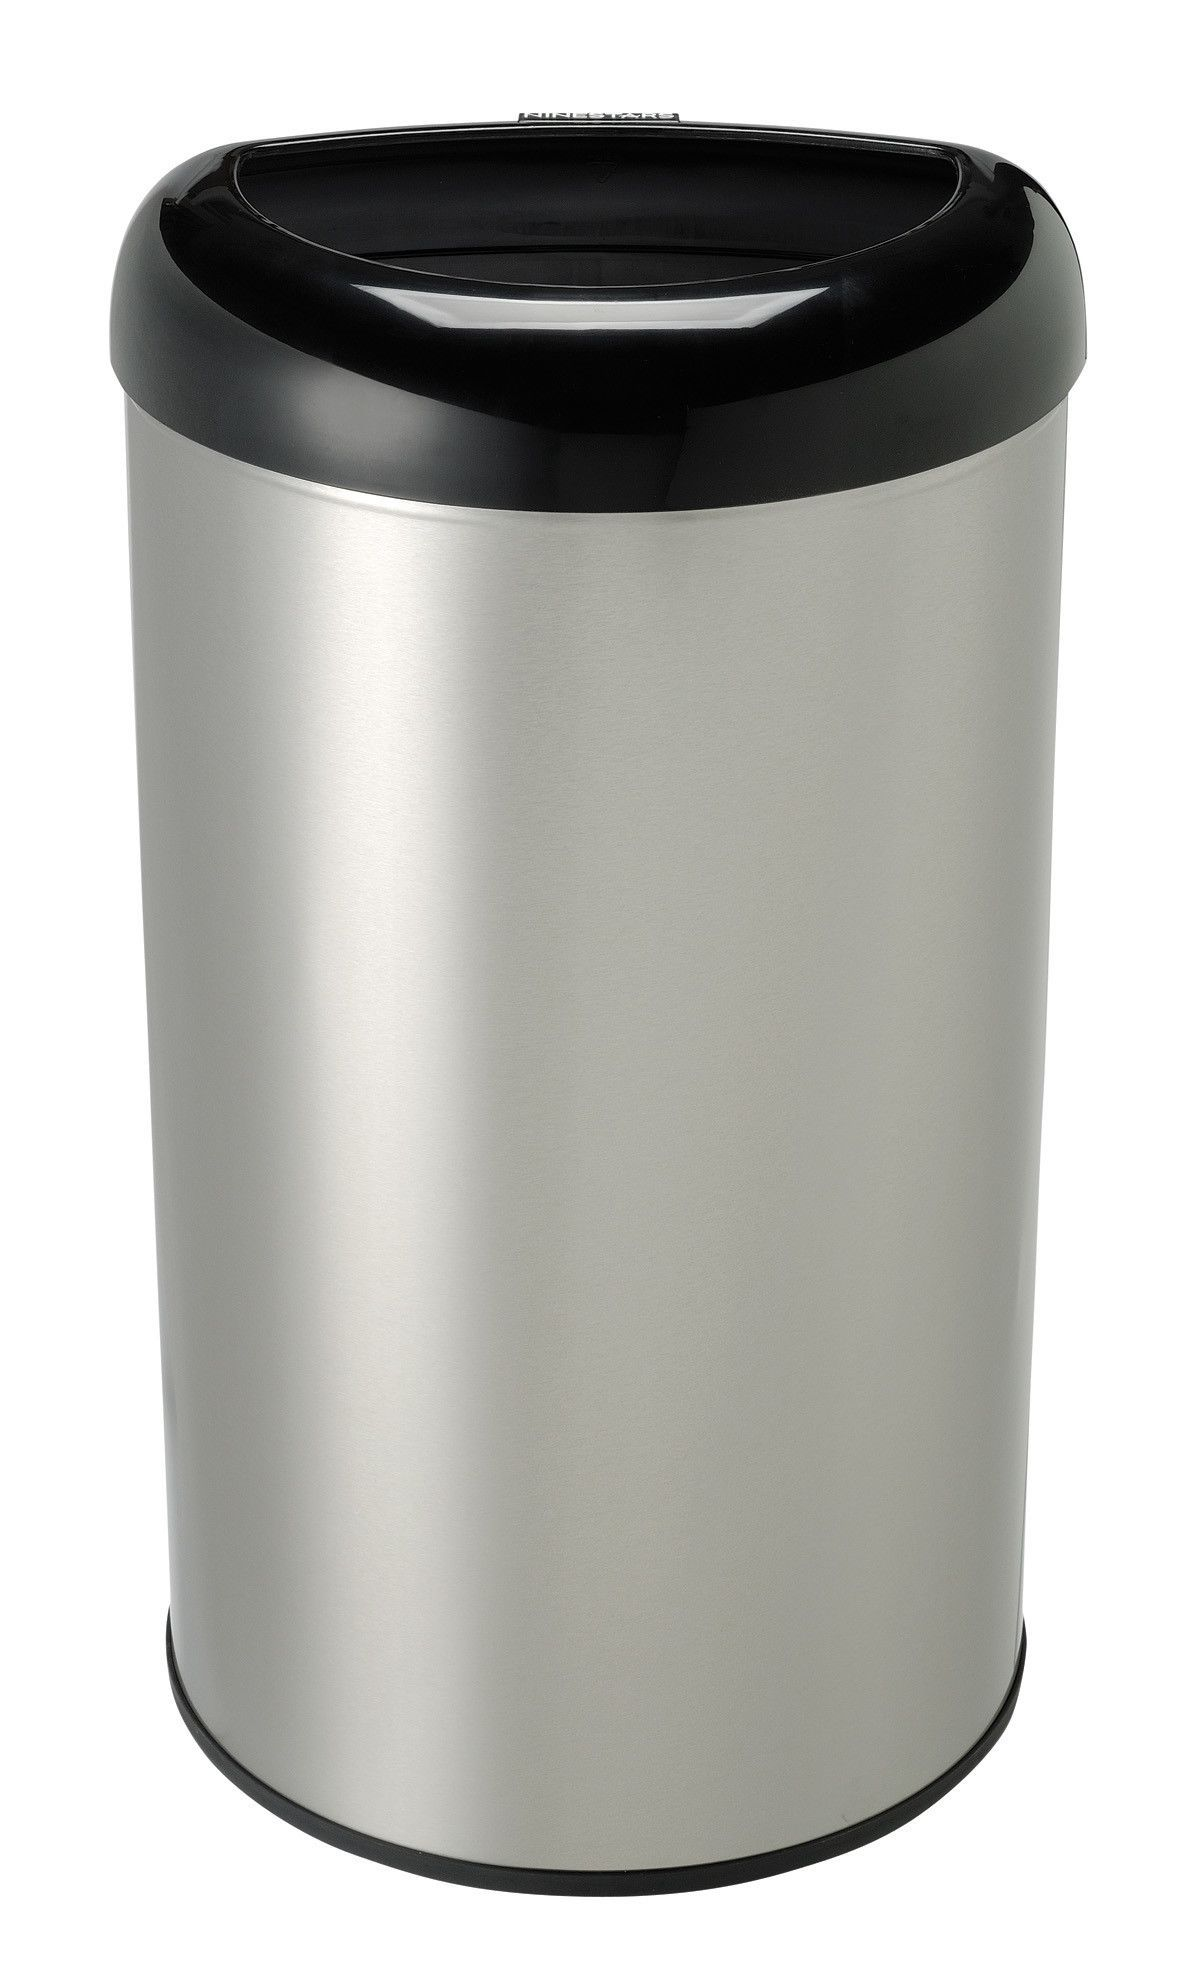 Stainless Steel 13.2 Gallon Open Top Trash Can | Kitchen ...